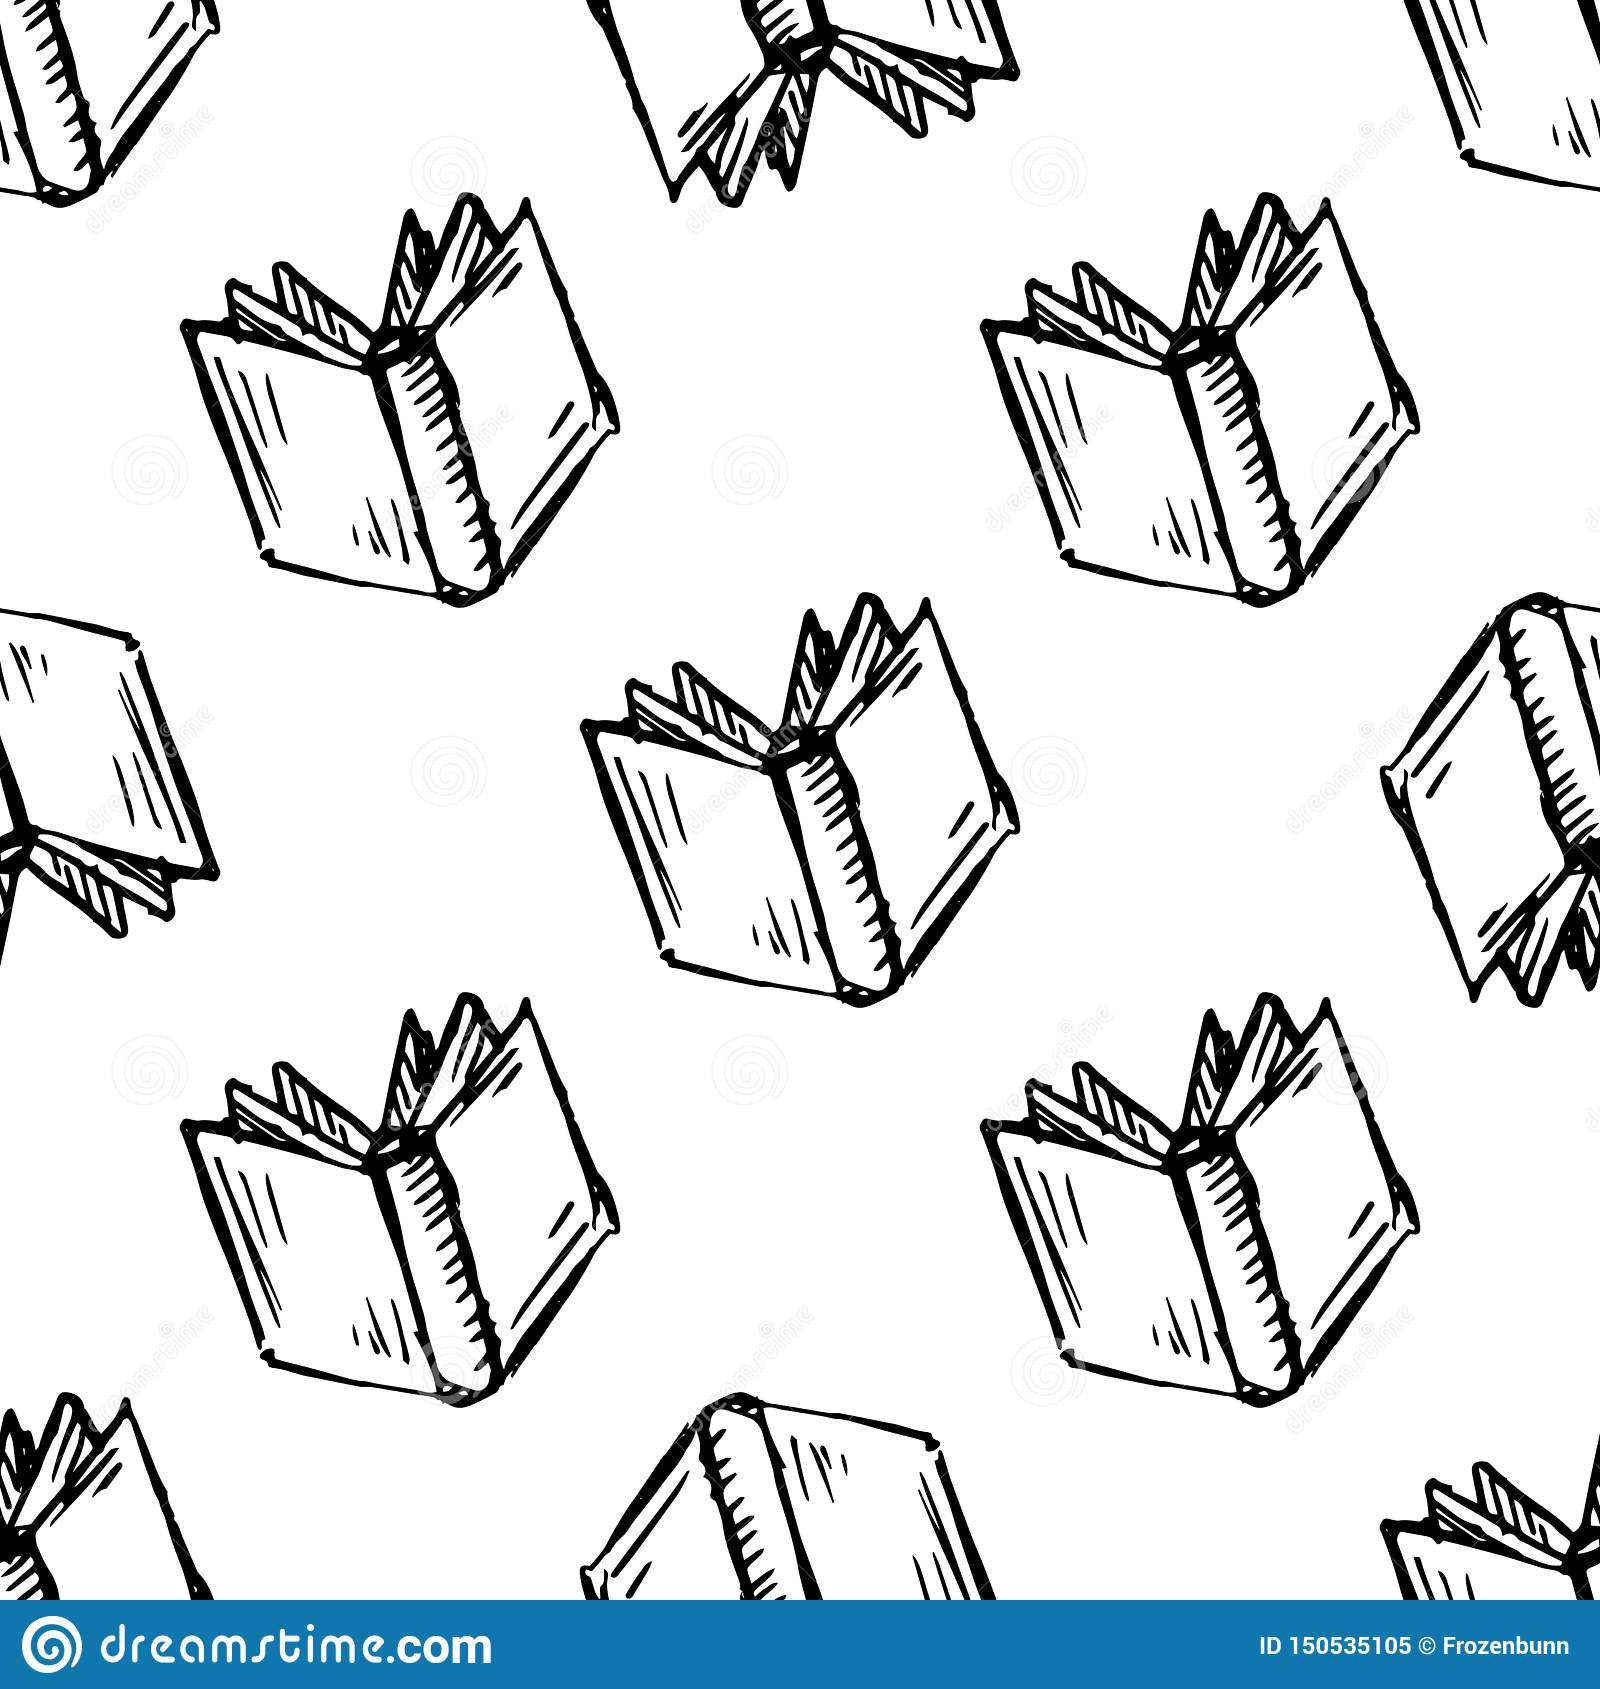 Seamless pattern Handdrawn book doodle icon. Hand drawn black sketch. Sign symbol. Decoration element. White background. Isolated